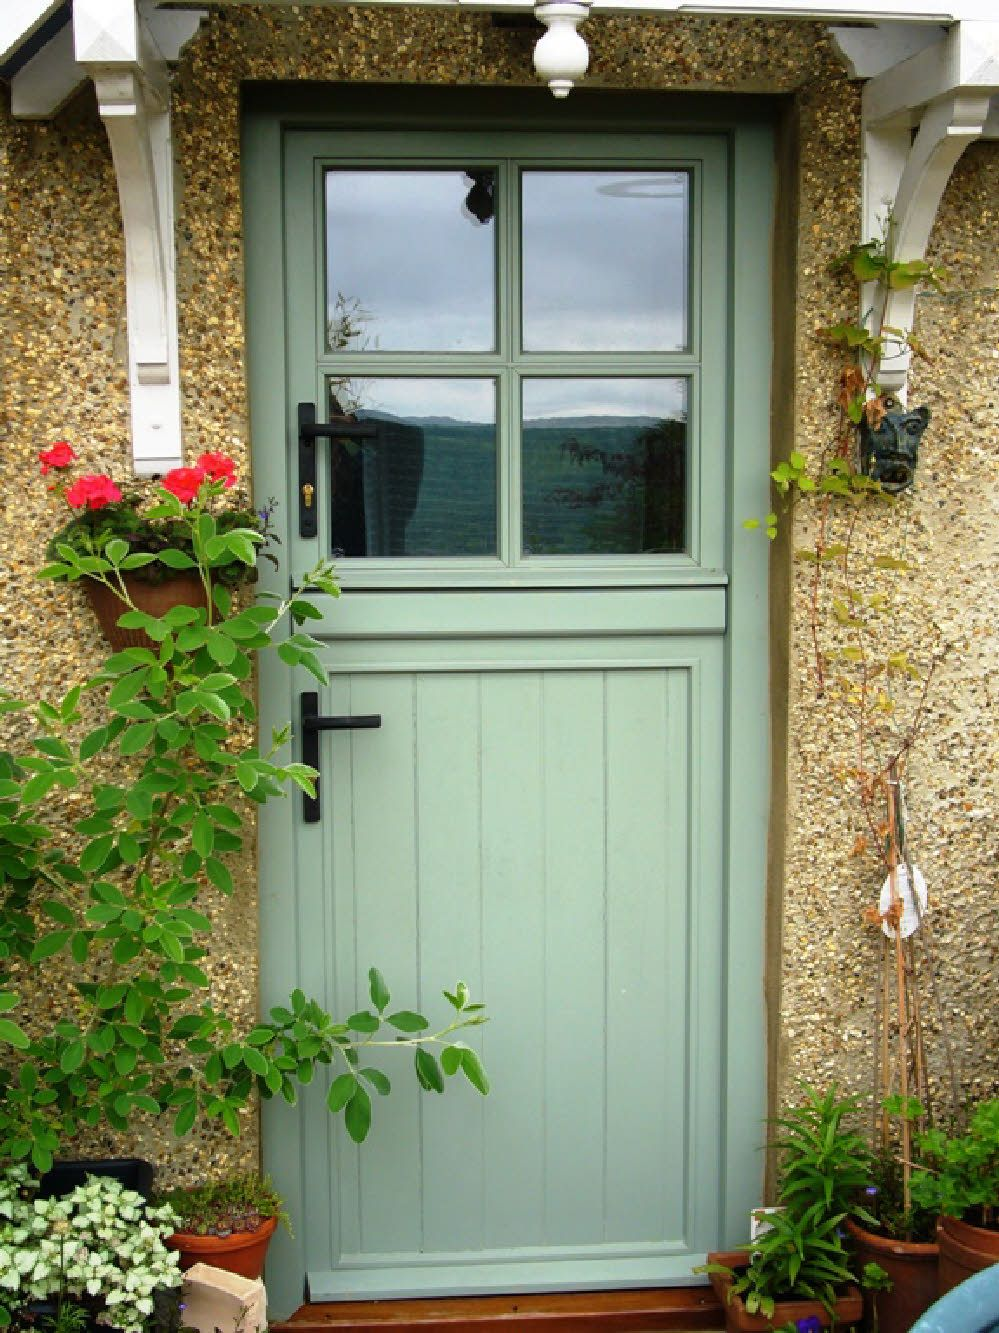 Ellwood stable doors traditional bespoke hand made for Upvc windows and doors